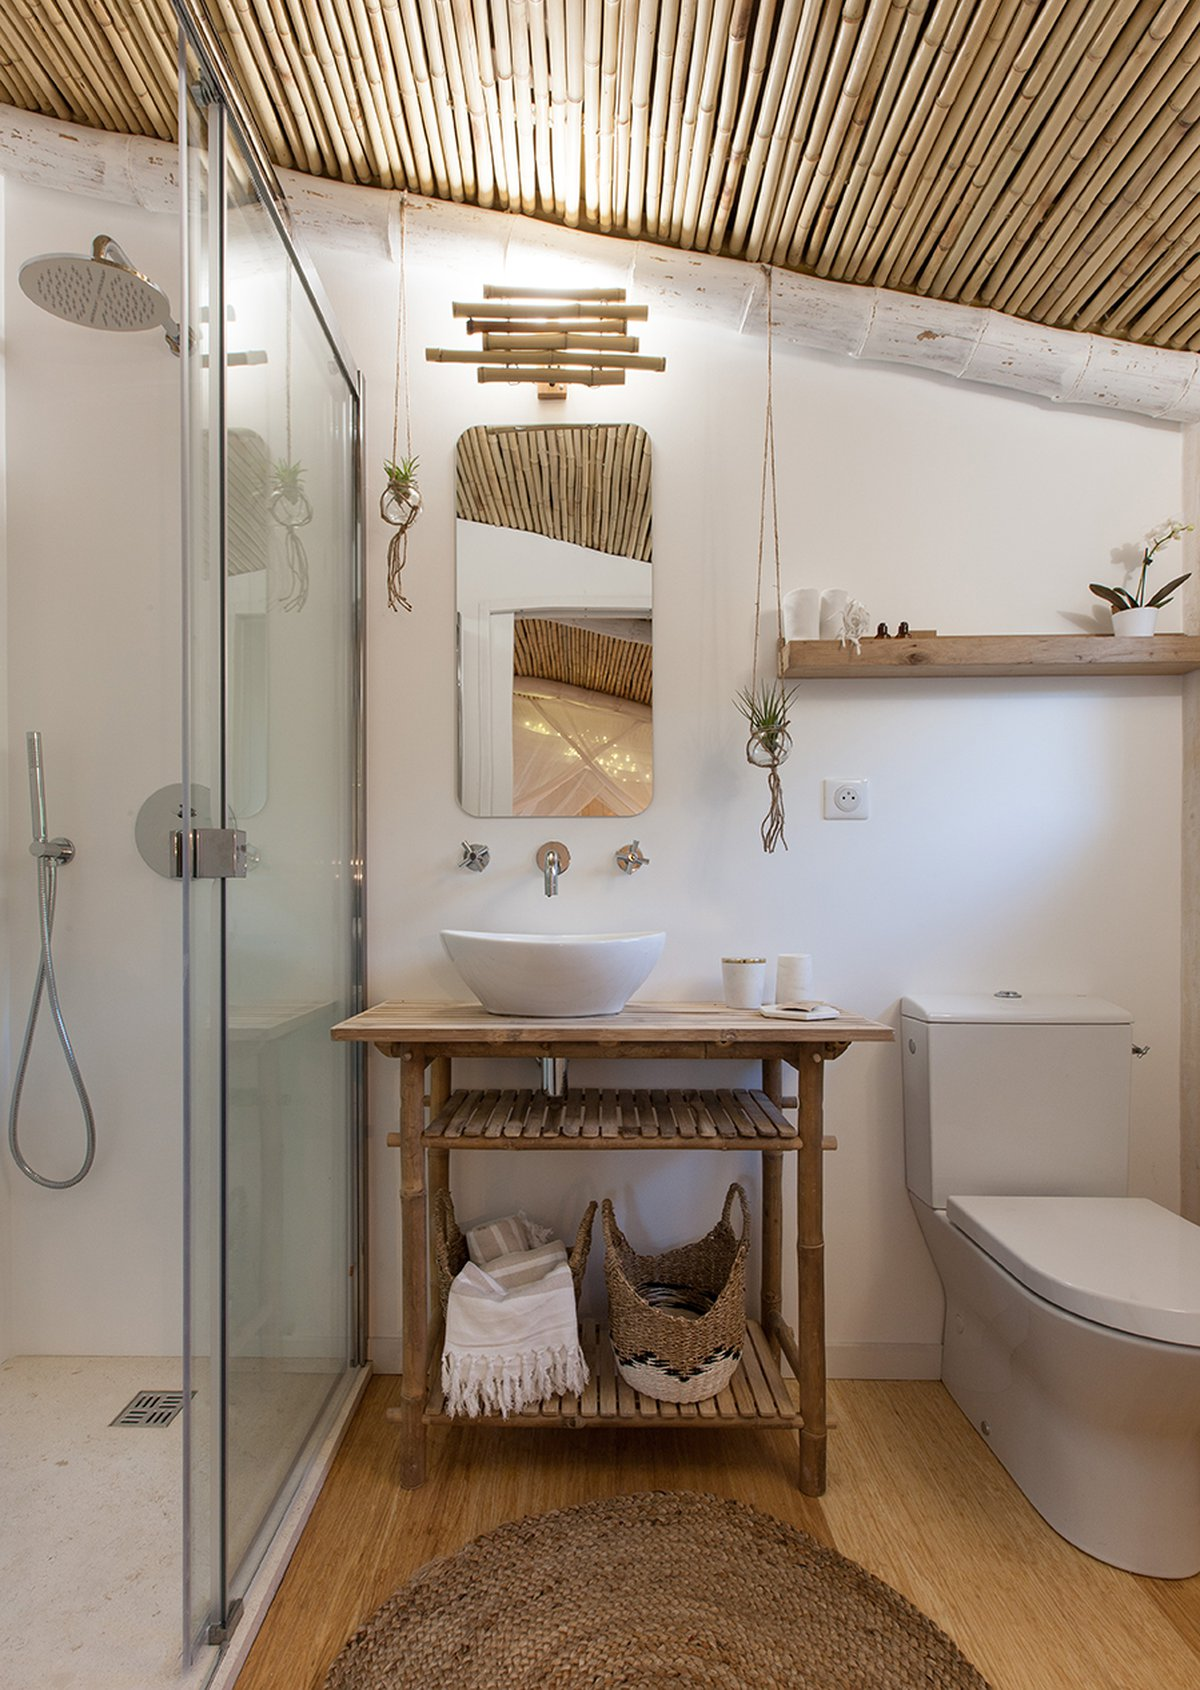 CABANE & SPA PELLA ROCA a small and cozy hotel in France. Bathroom decorated with Bamboo furniture